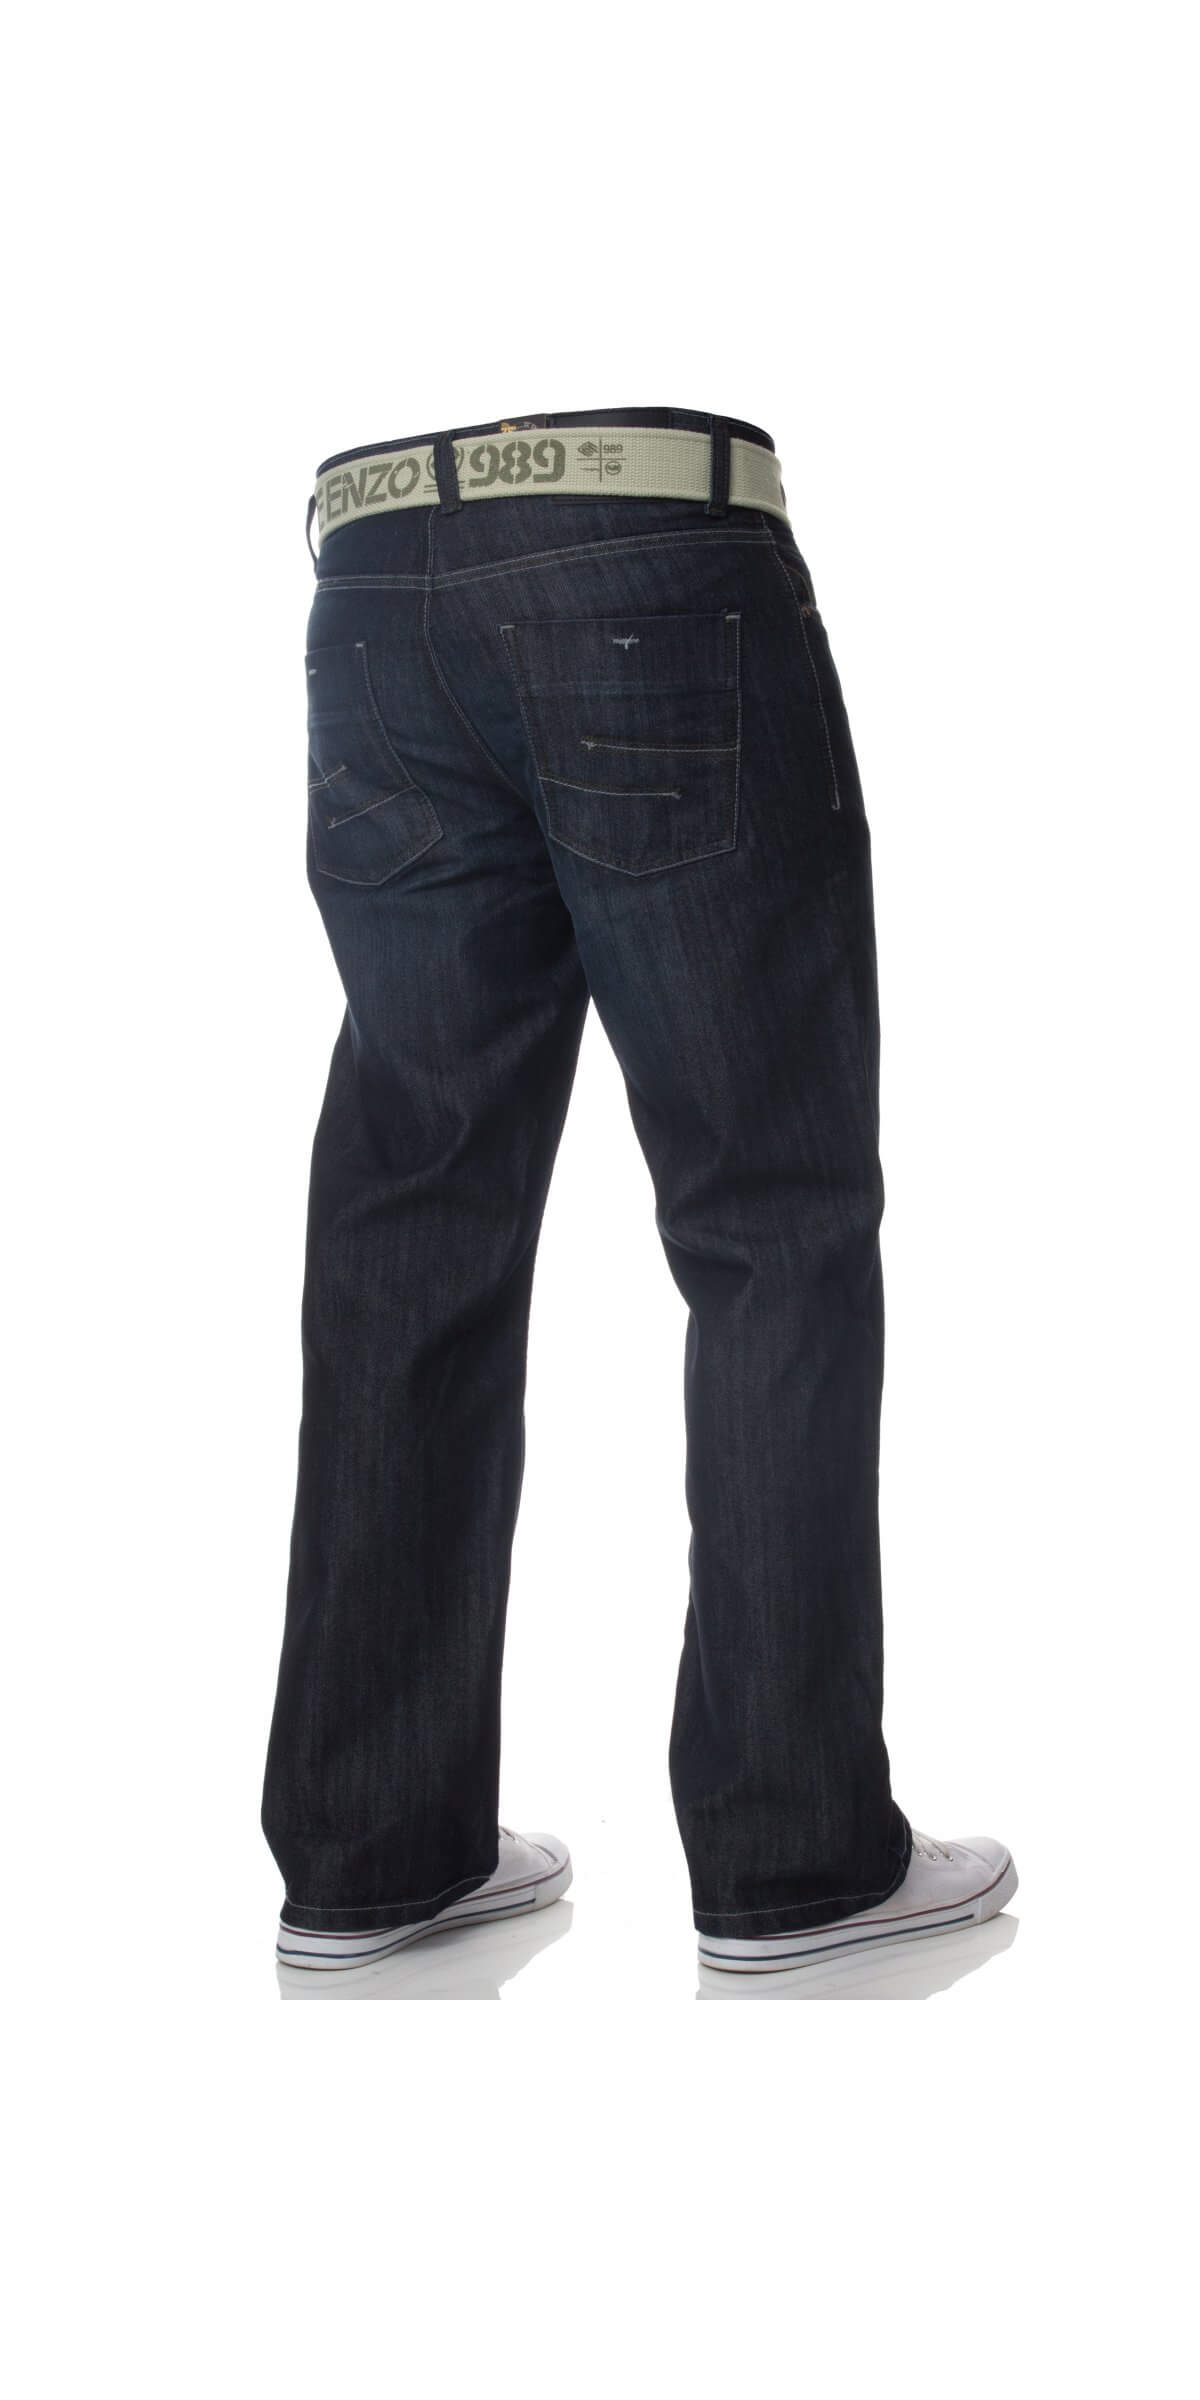 Mens Dark Blue Jeans with Belt EZ14 | Enzo Designer Menswear